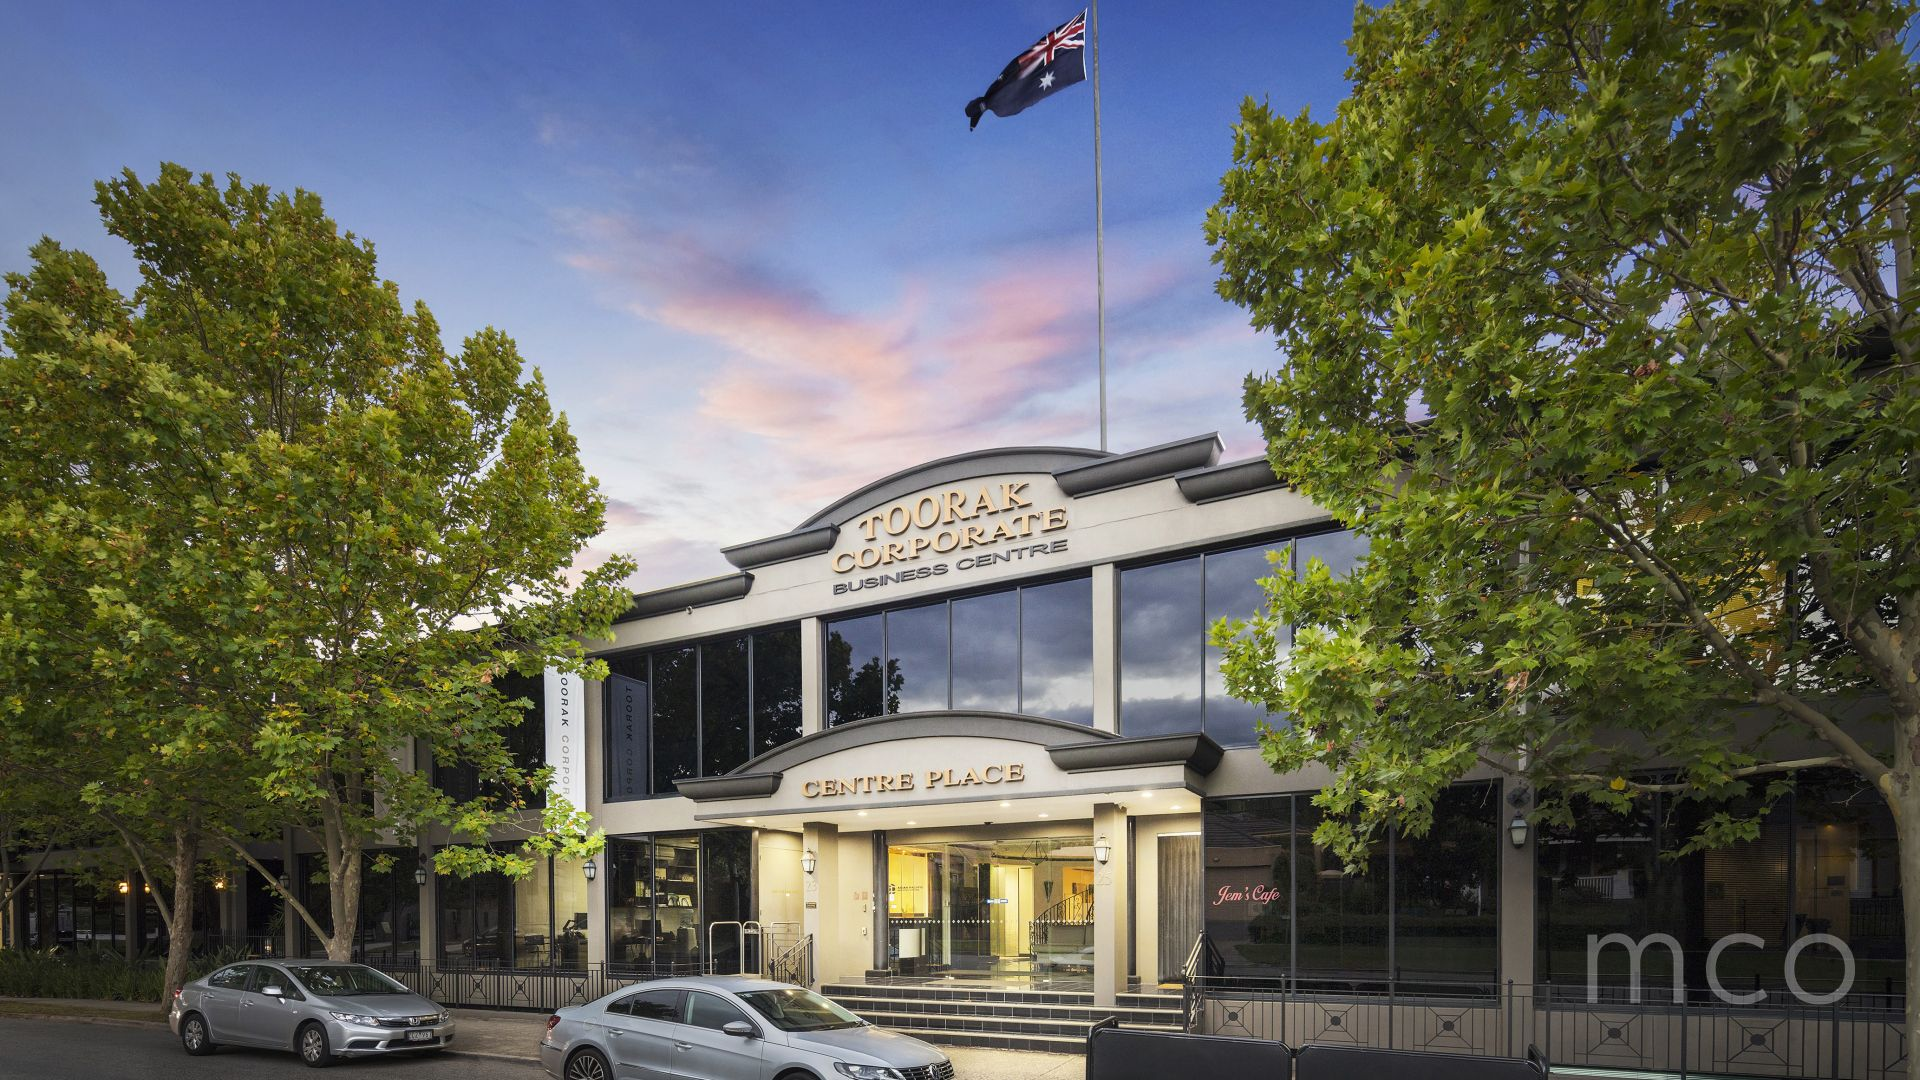 Impeccable leasing opportunity at Toorak Corporate